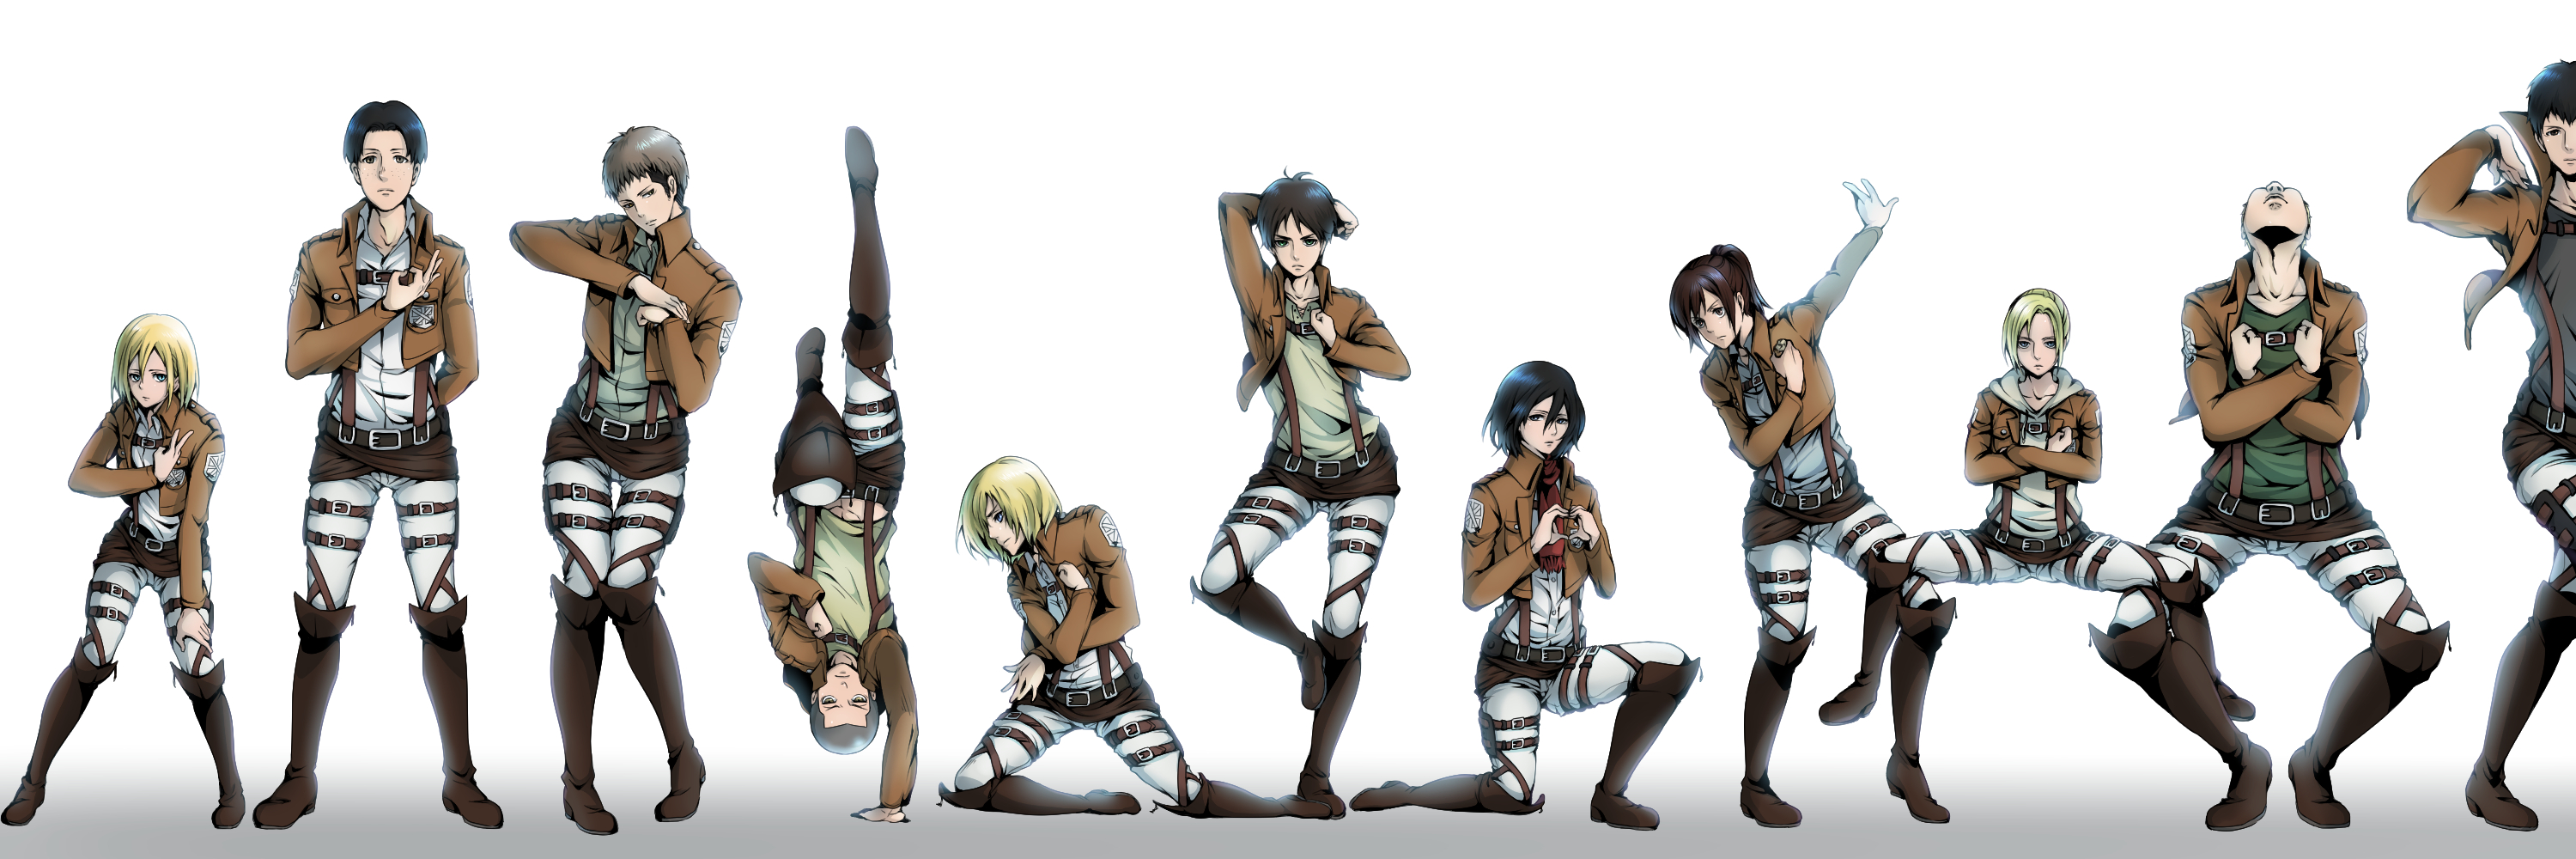 Download Wallpaper From Anime Attack On Titan With Tags Good Quality